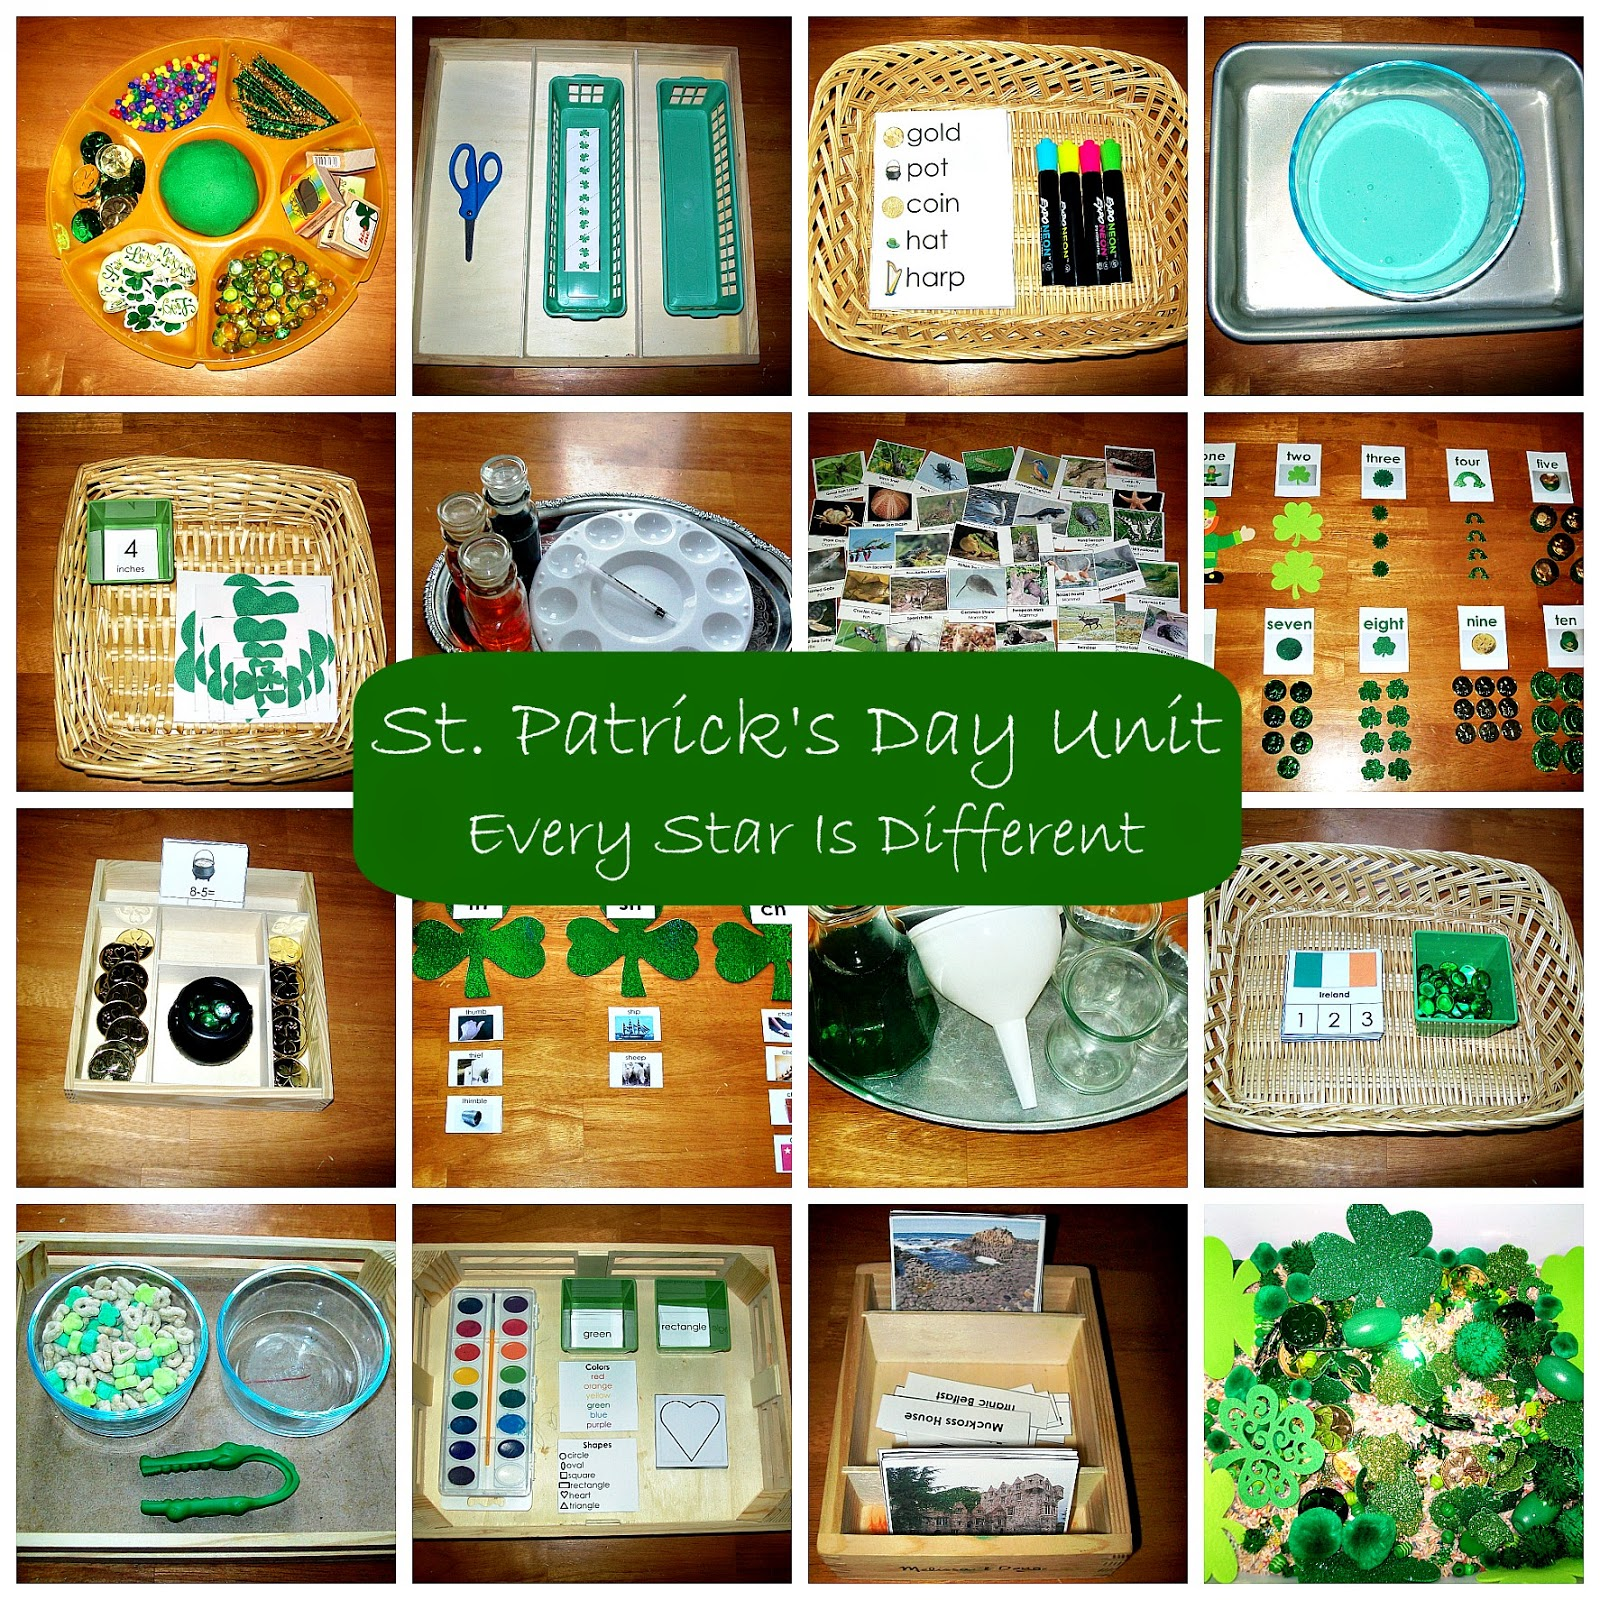 St. Patrick's Day & More